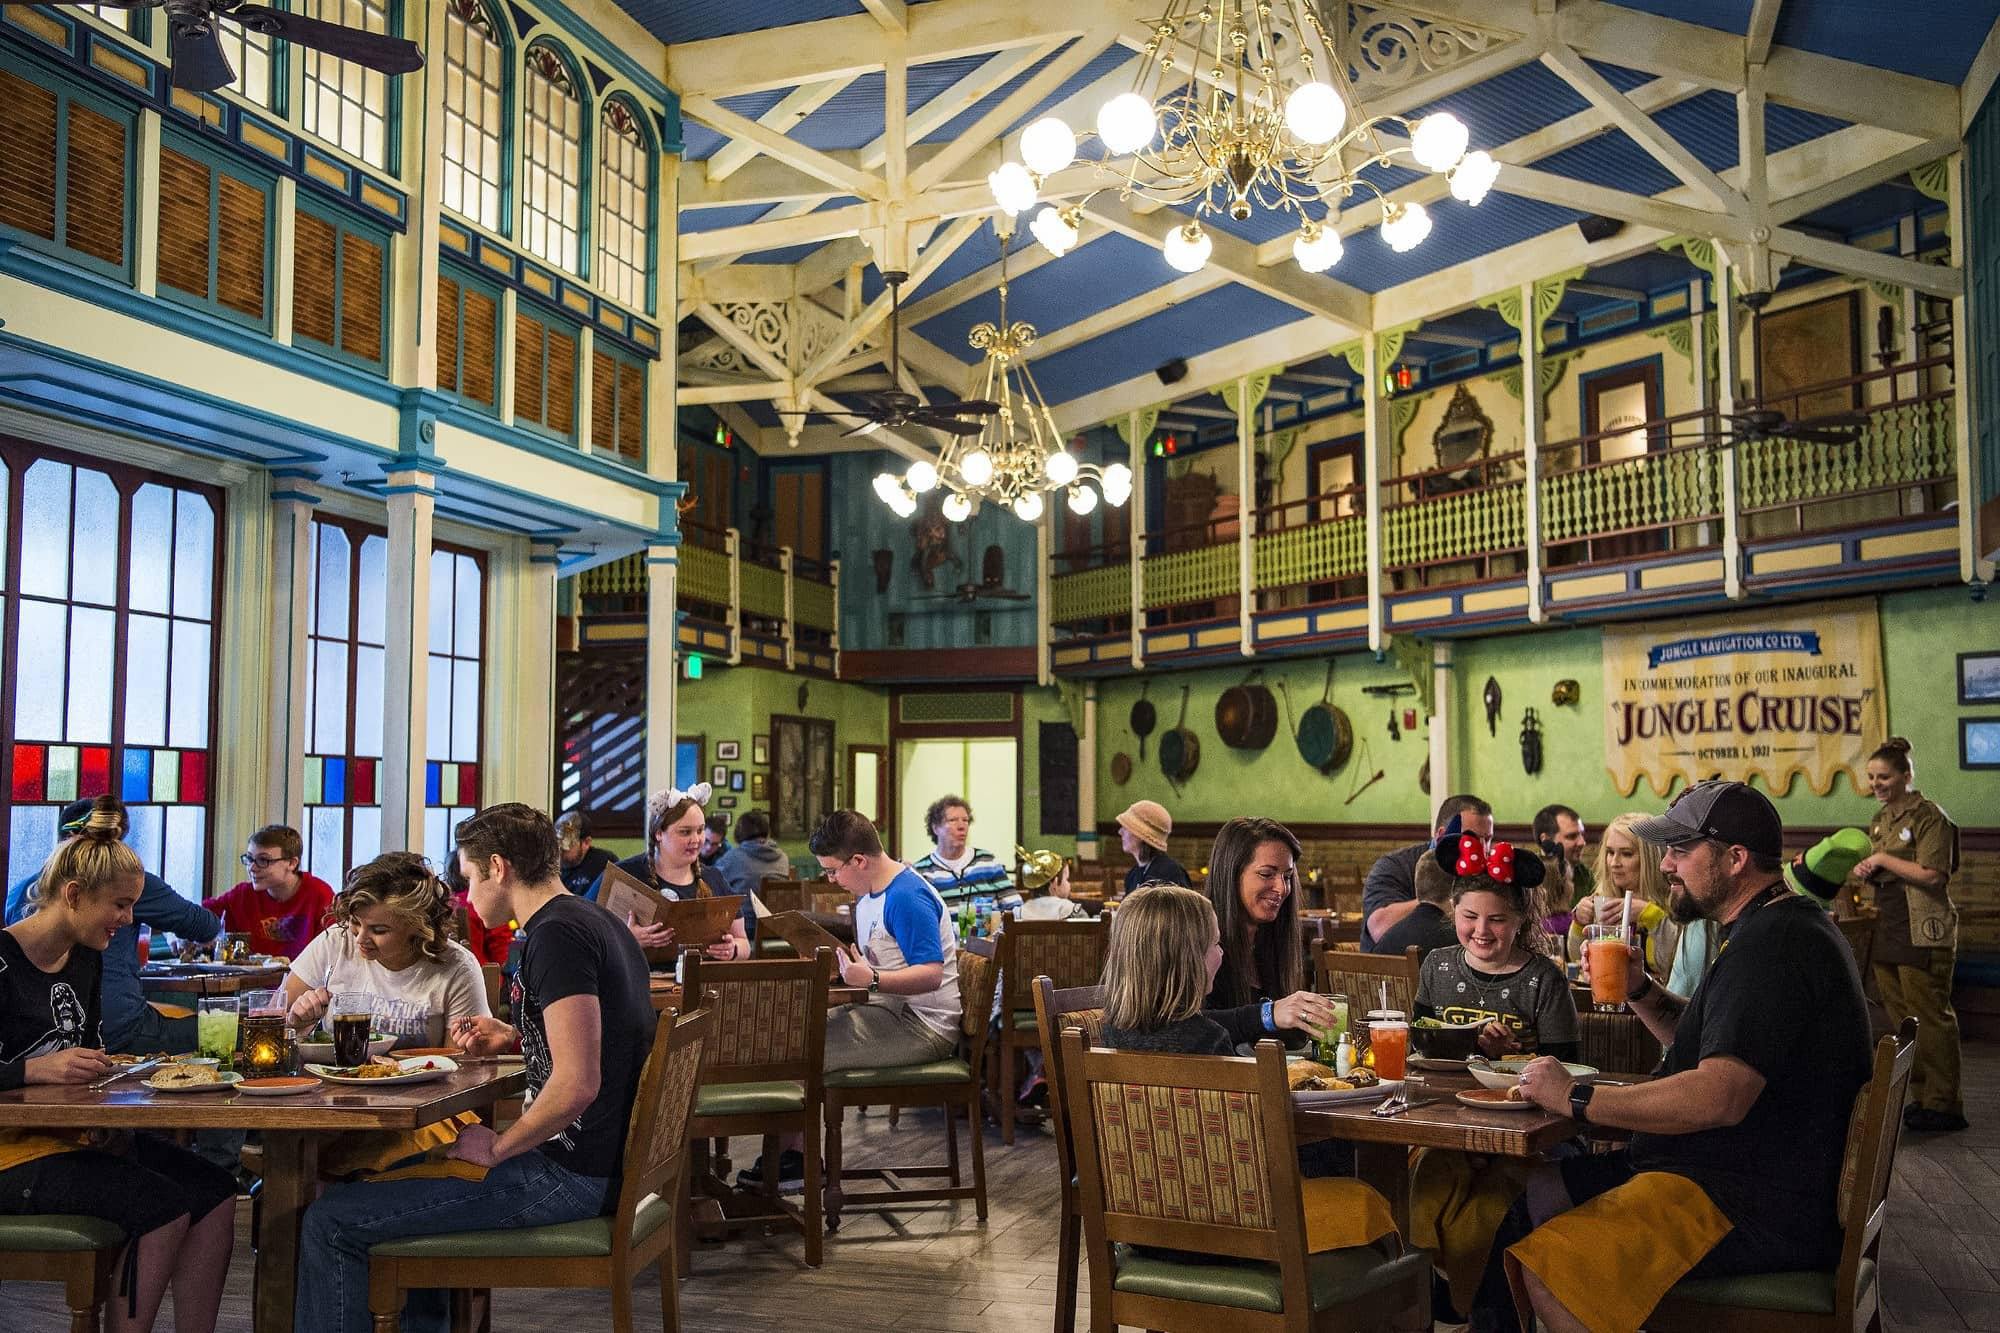 Teens and tweens may enjoy the Asian, South American and African cuisine offered at Jungle Navigation Co. Ltd. Skipper Canteen restaurant at Magic Kingdom ~ Disney World with Teens and Tweens